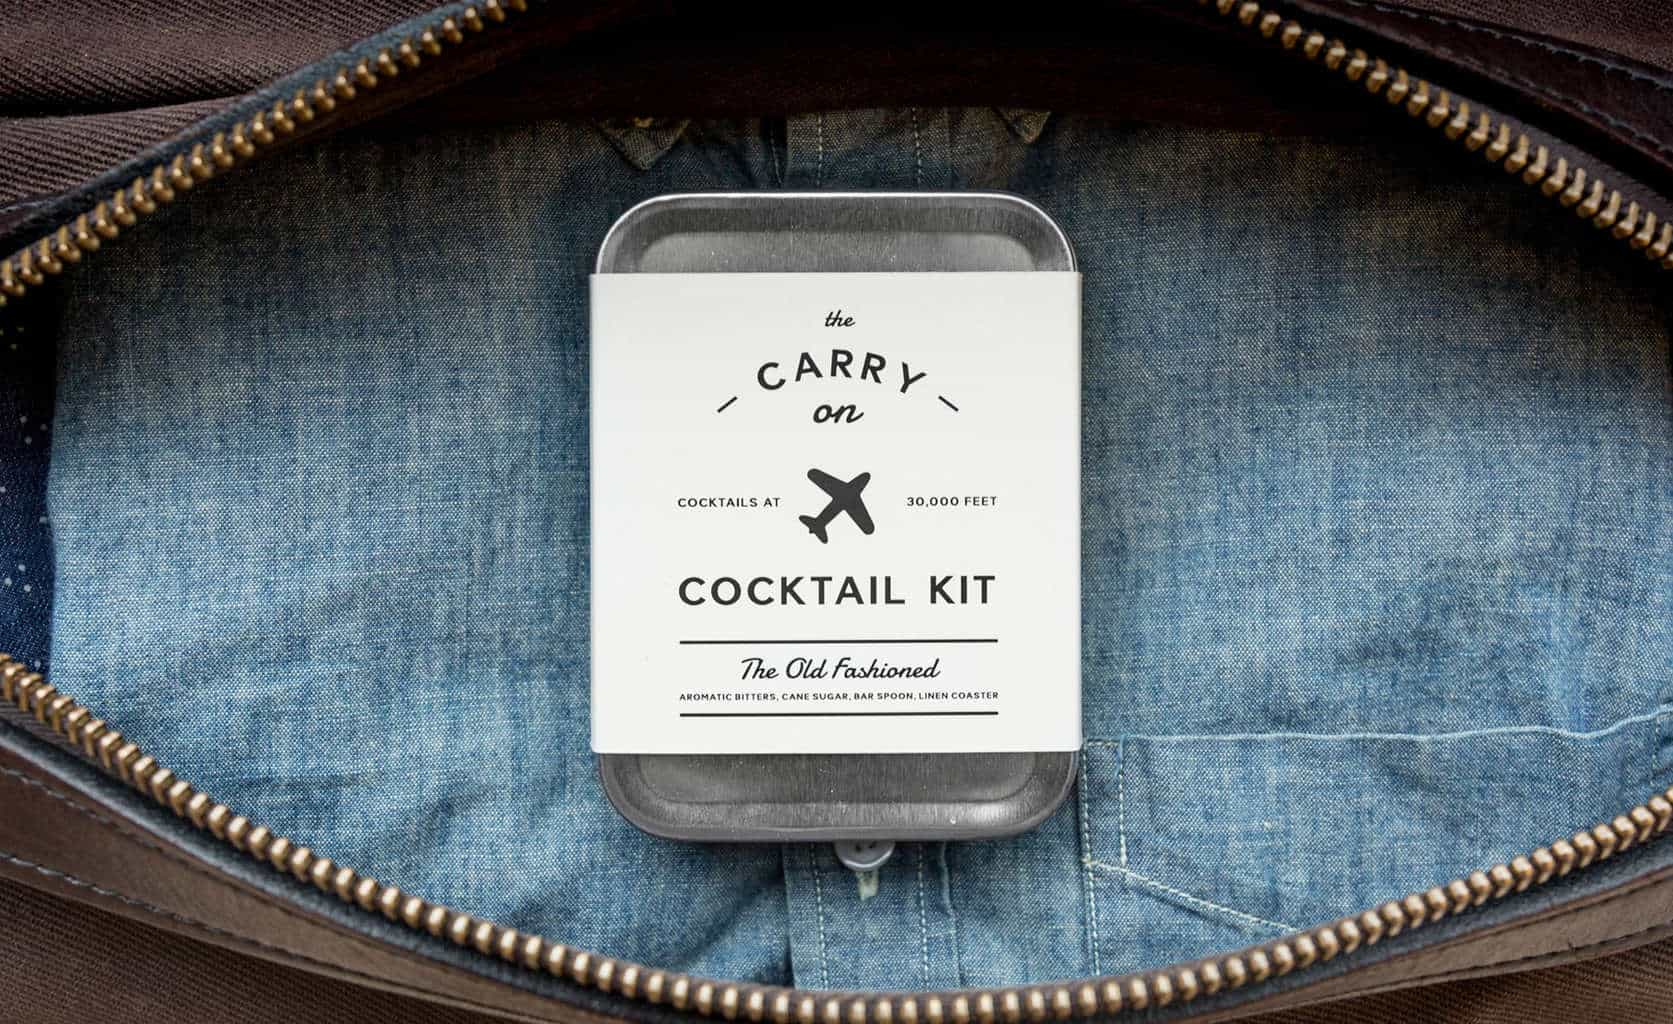 Carry on Cocktail Kit - Carry on Cocktail Kit